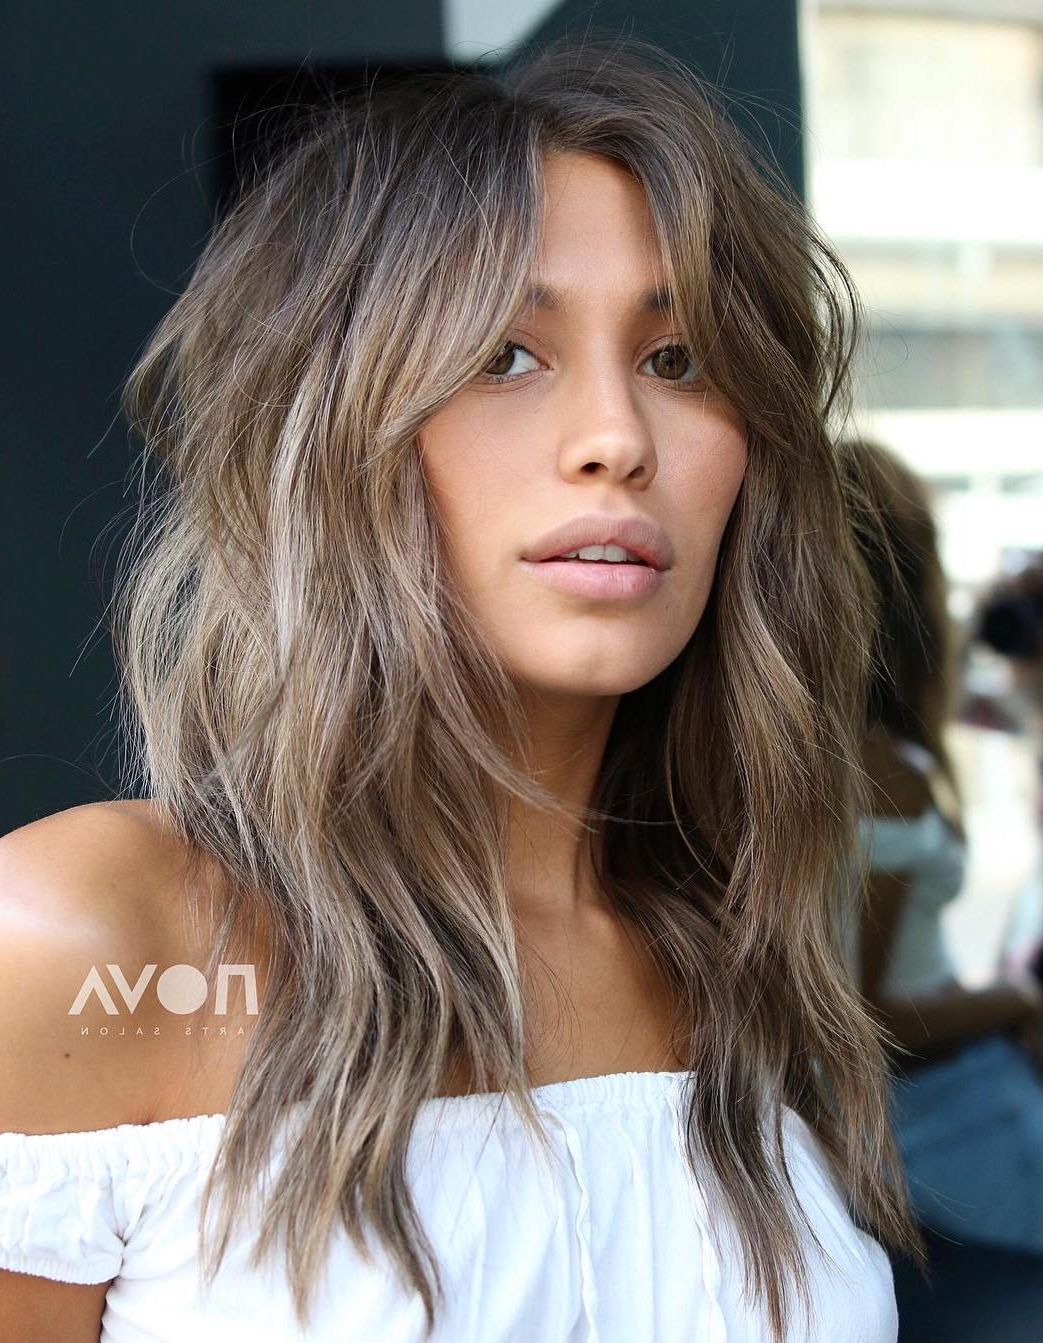 40 Modern Shag Haircuts For Women To Make A Splash With Recent Razored Shaggy Chocolate And Caramel Bob Hairstyles (View 14 of 20)